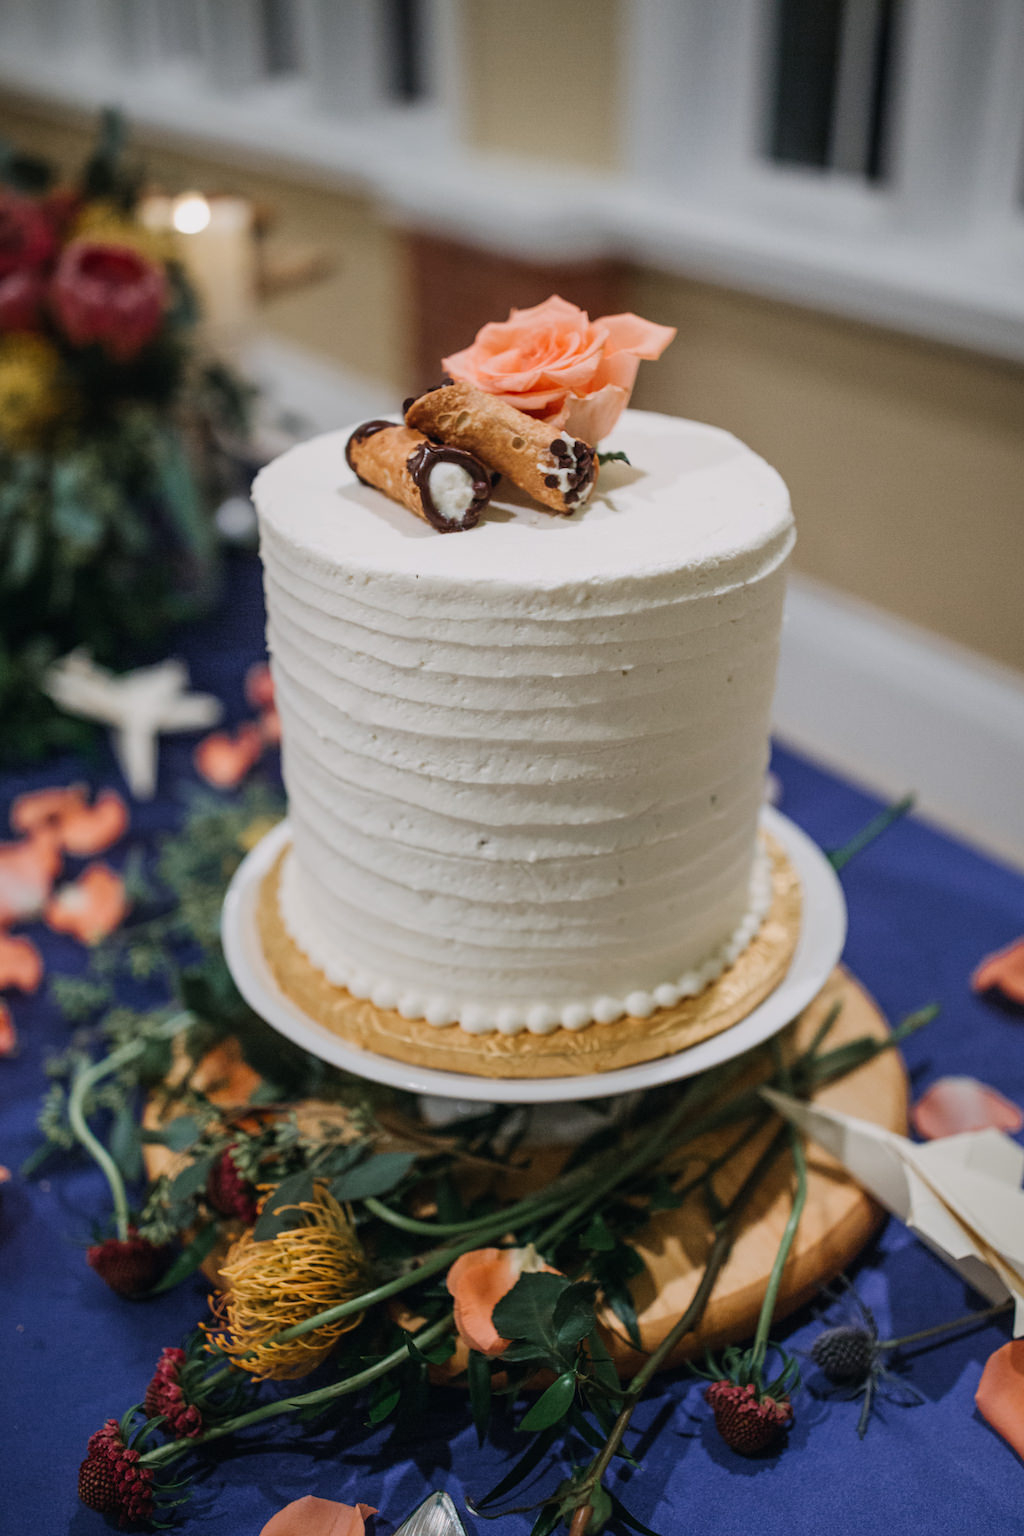 Single Tier Round White Wedding Cake with Mini Cannoli and Pink Rose on Gold Cake Stand